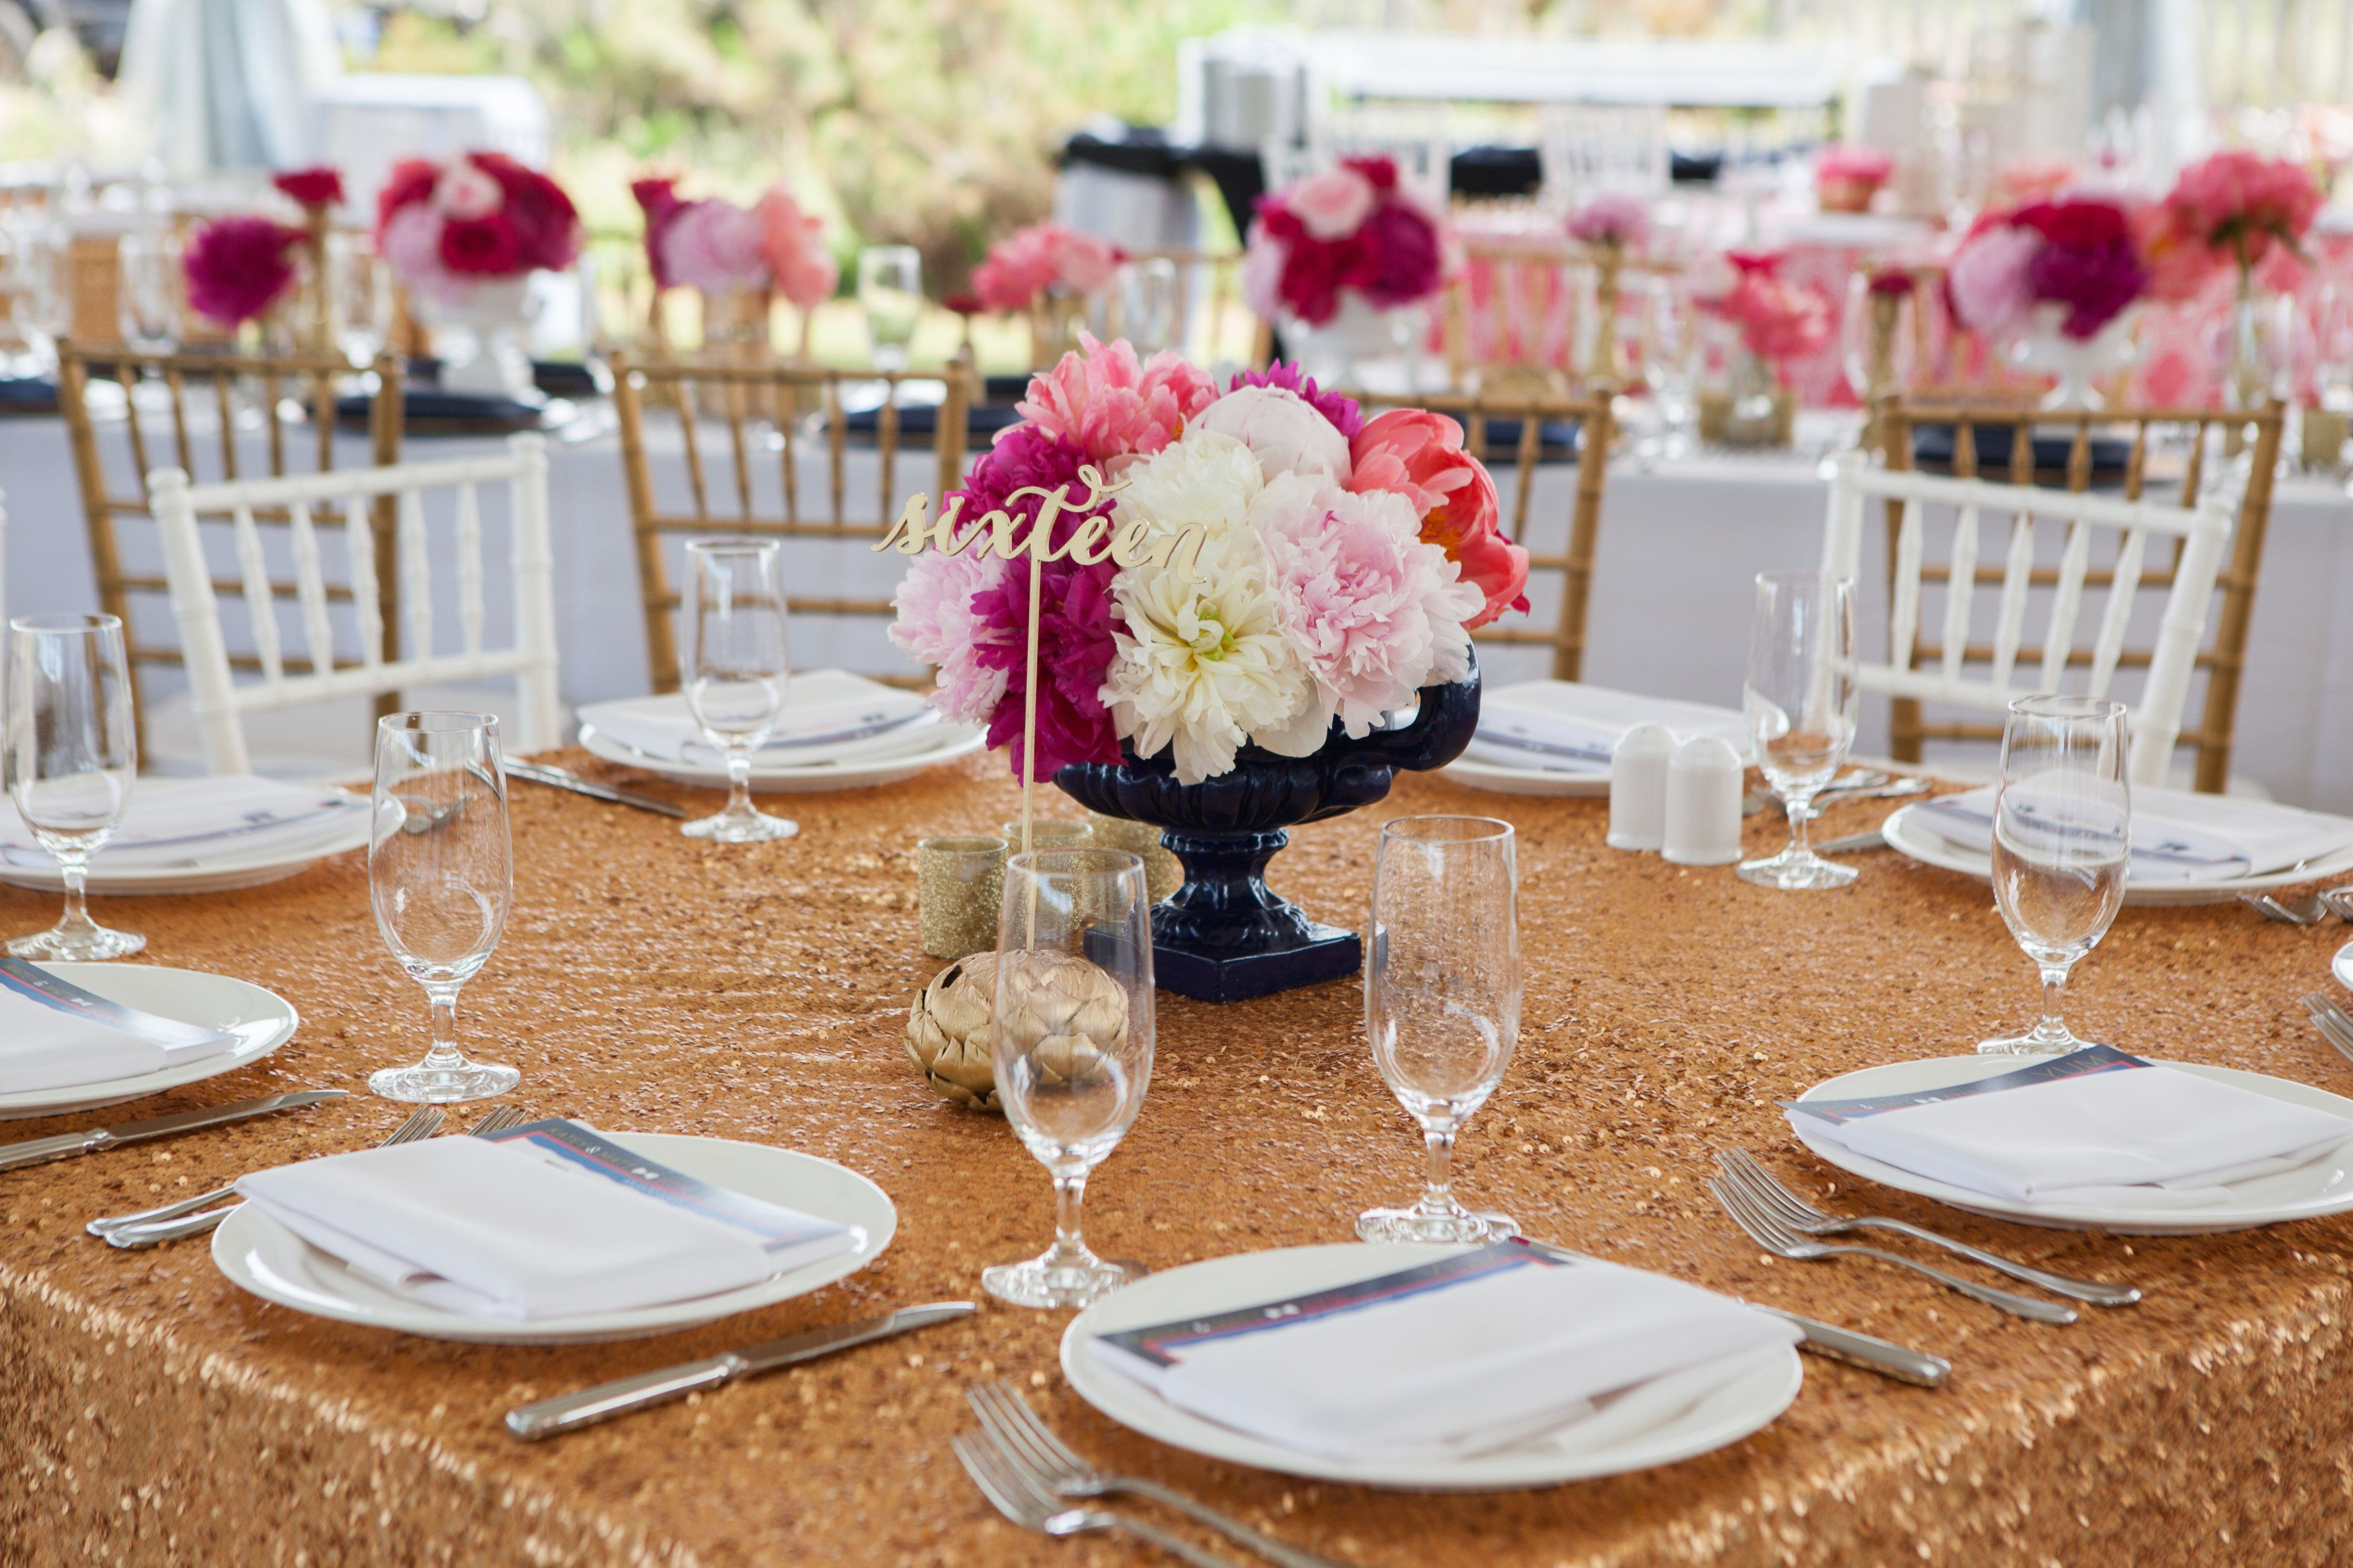 Wedding Table Linen Ideas Part - 30: Gold Sequins Tablecloth With Pink Peony Arrangements